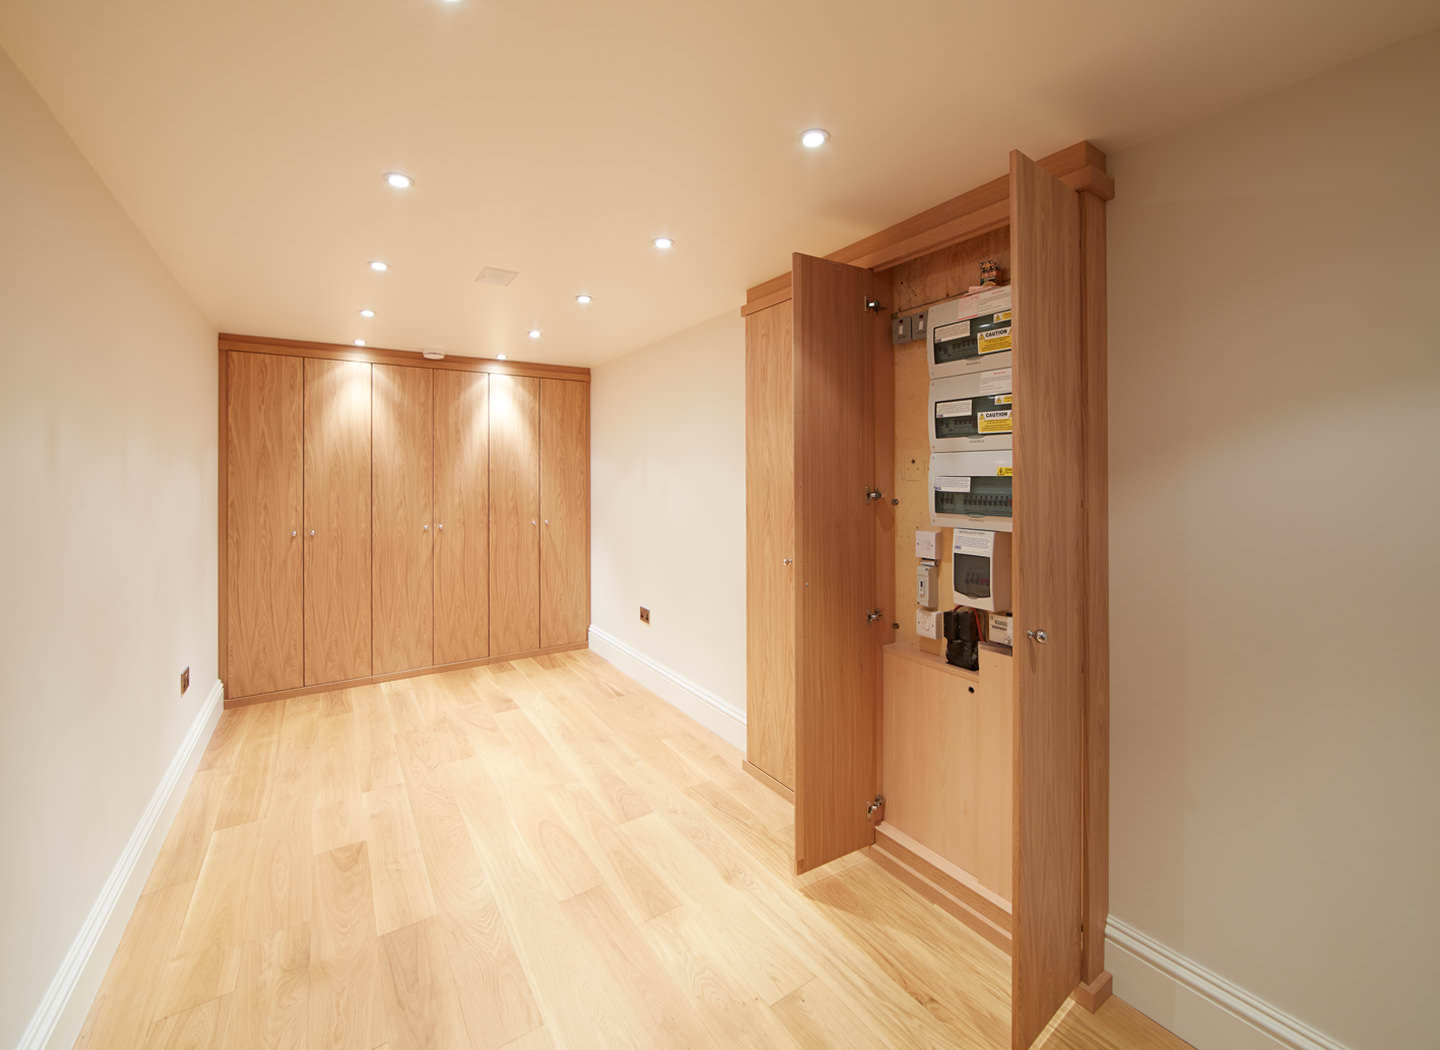 Case study showing meters cupboard in basement conversion